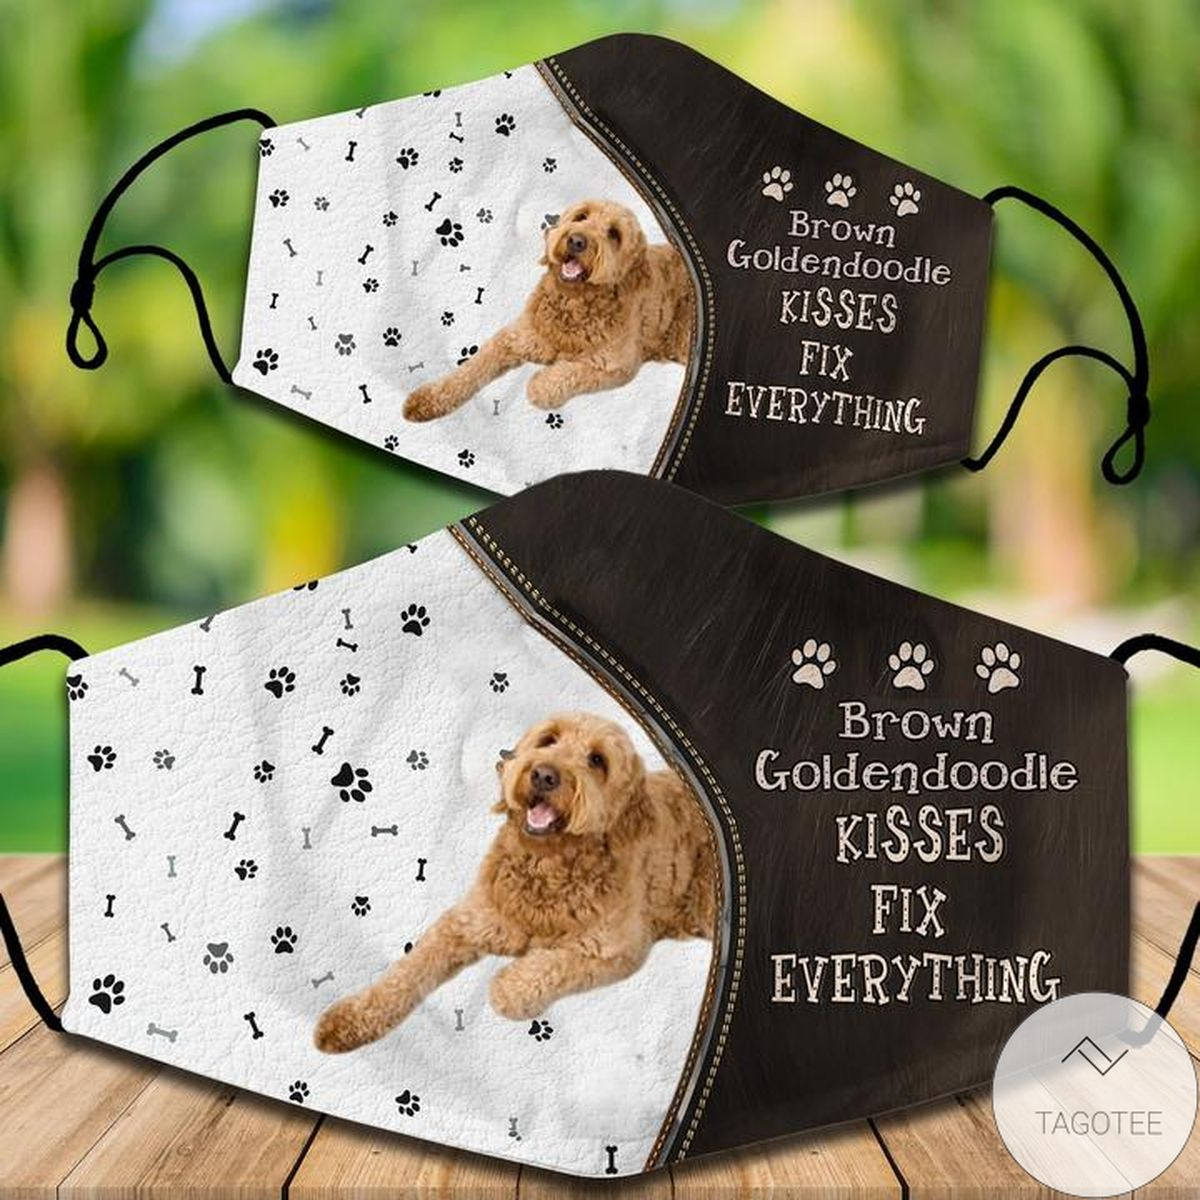 Brown Goldendoodle Kisses Fix Everything Face Mask